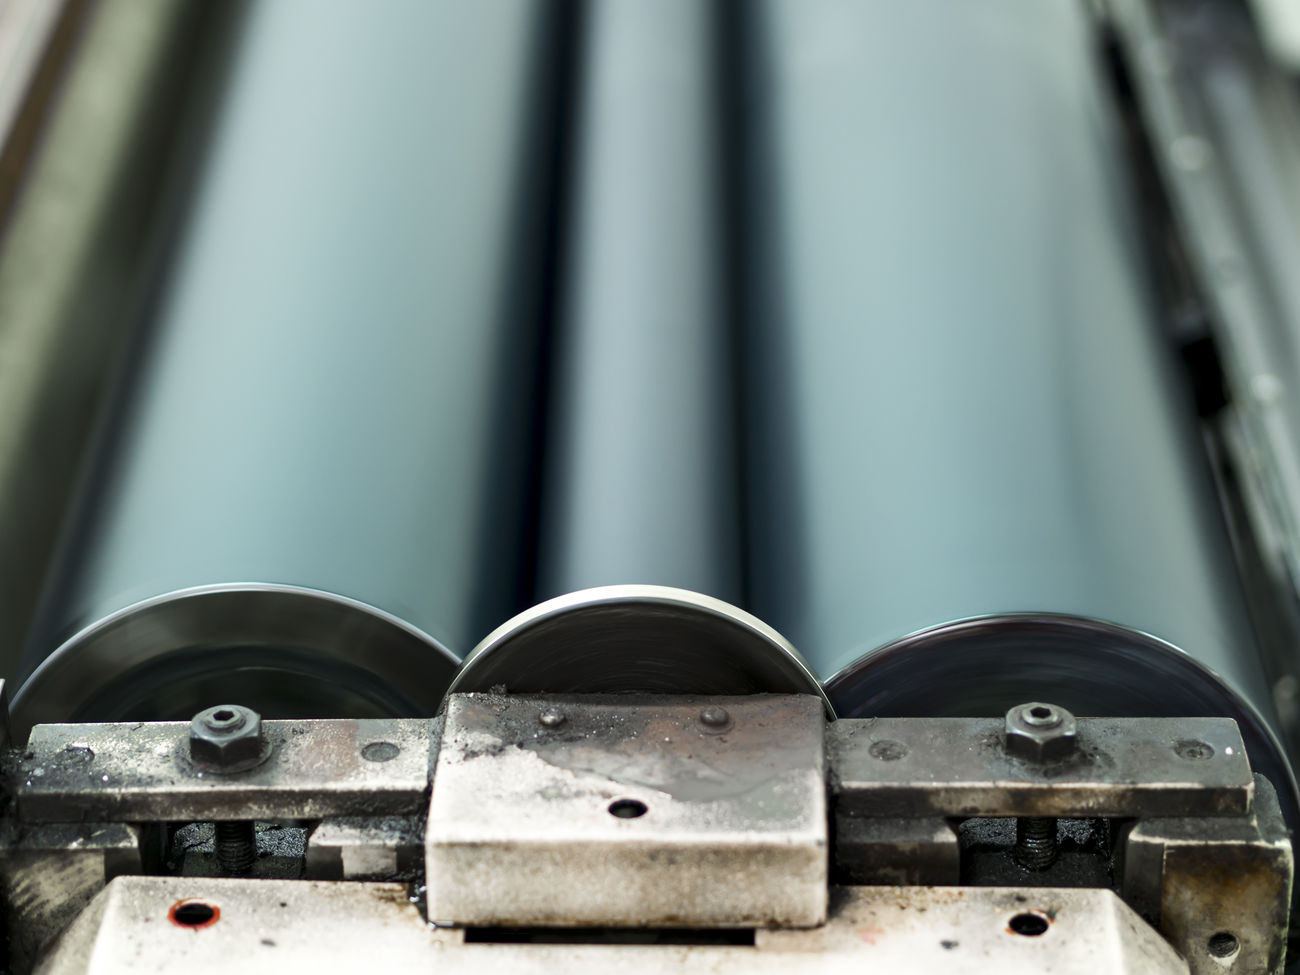 Abstract Abstract Photography Bolts Circular Close-up Design Graphic Design Industrial Ink Lithography Machine Metal No People Nuts Print Printer Printing Printing Press Proofing Roller Symmetry Teal Vertical Vertical Symmetry Wet Proof